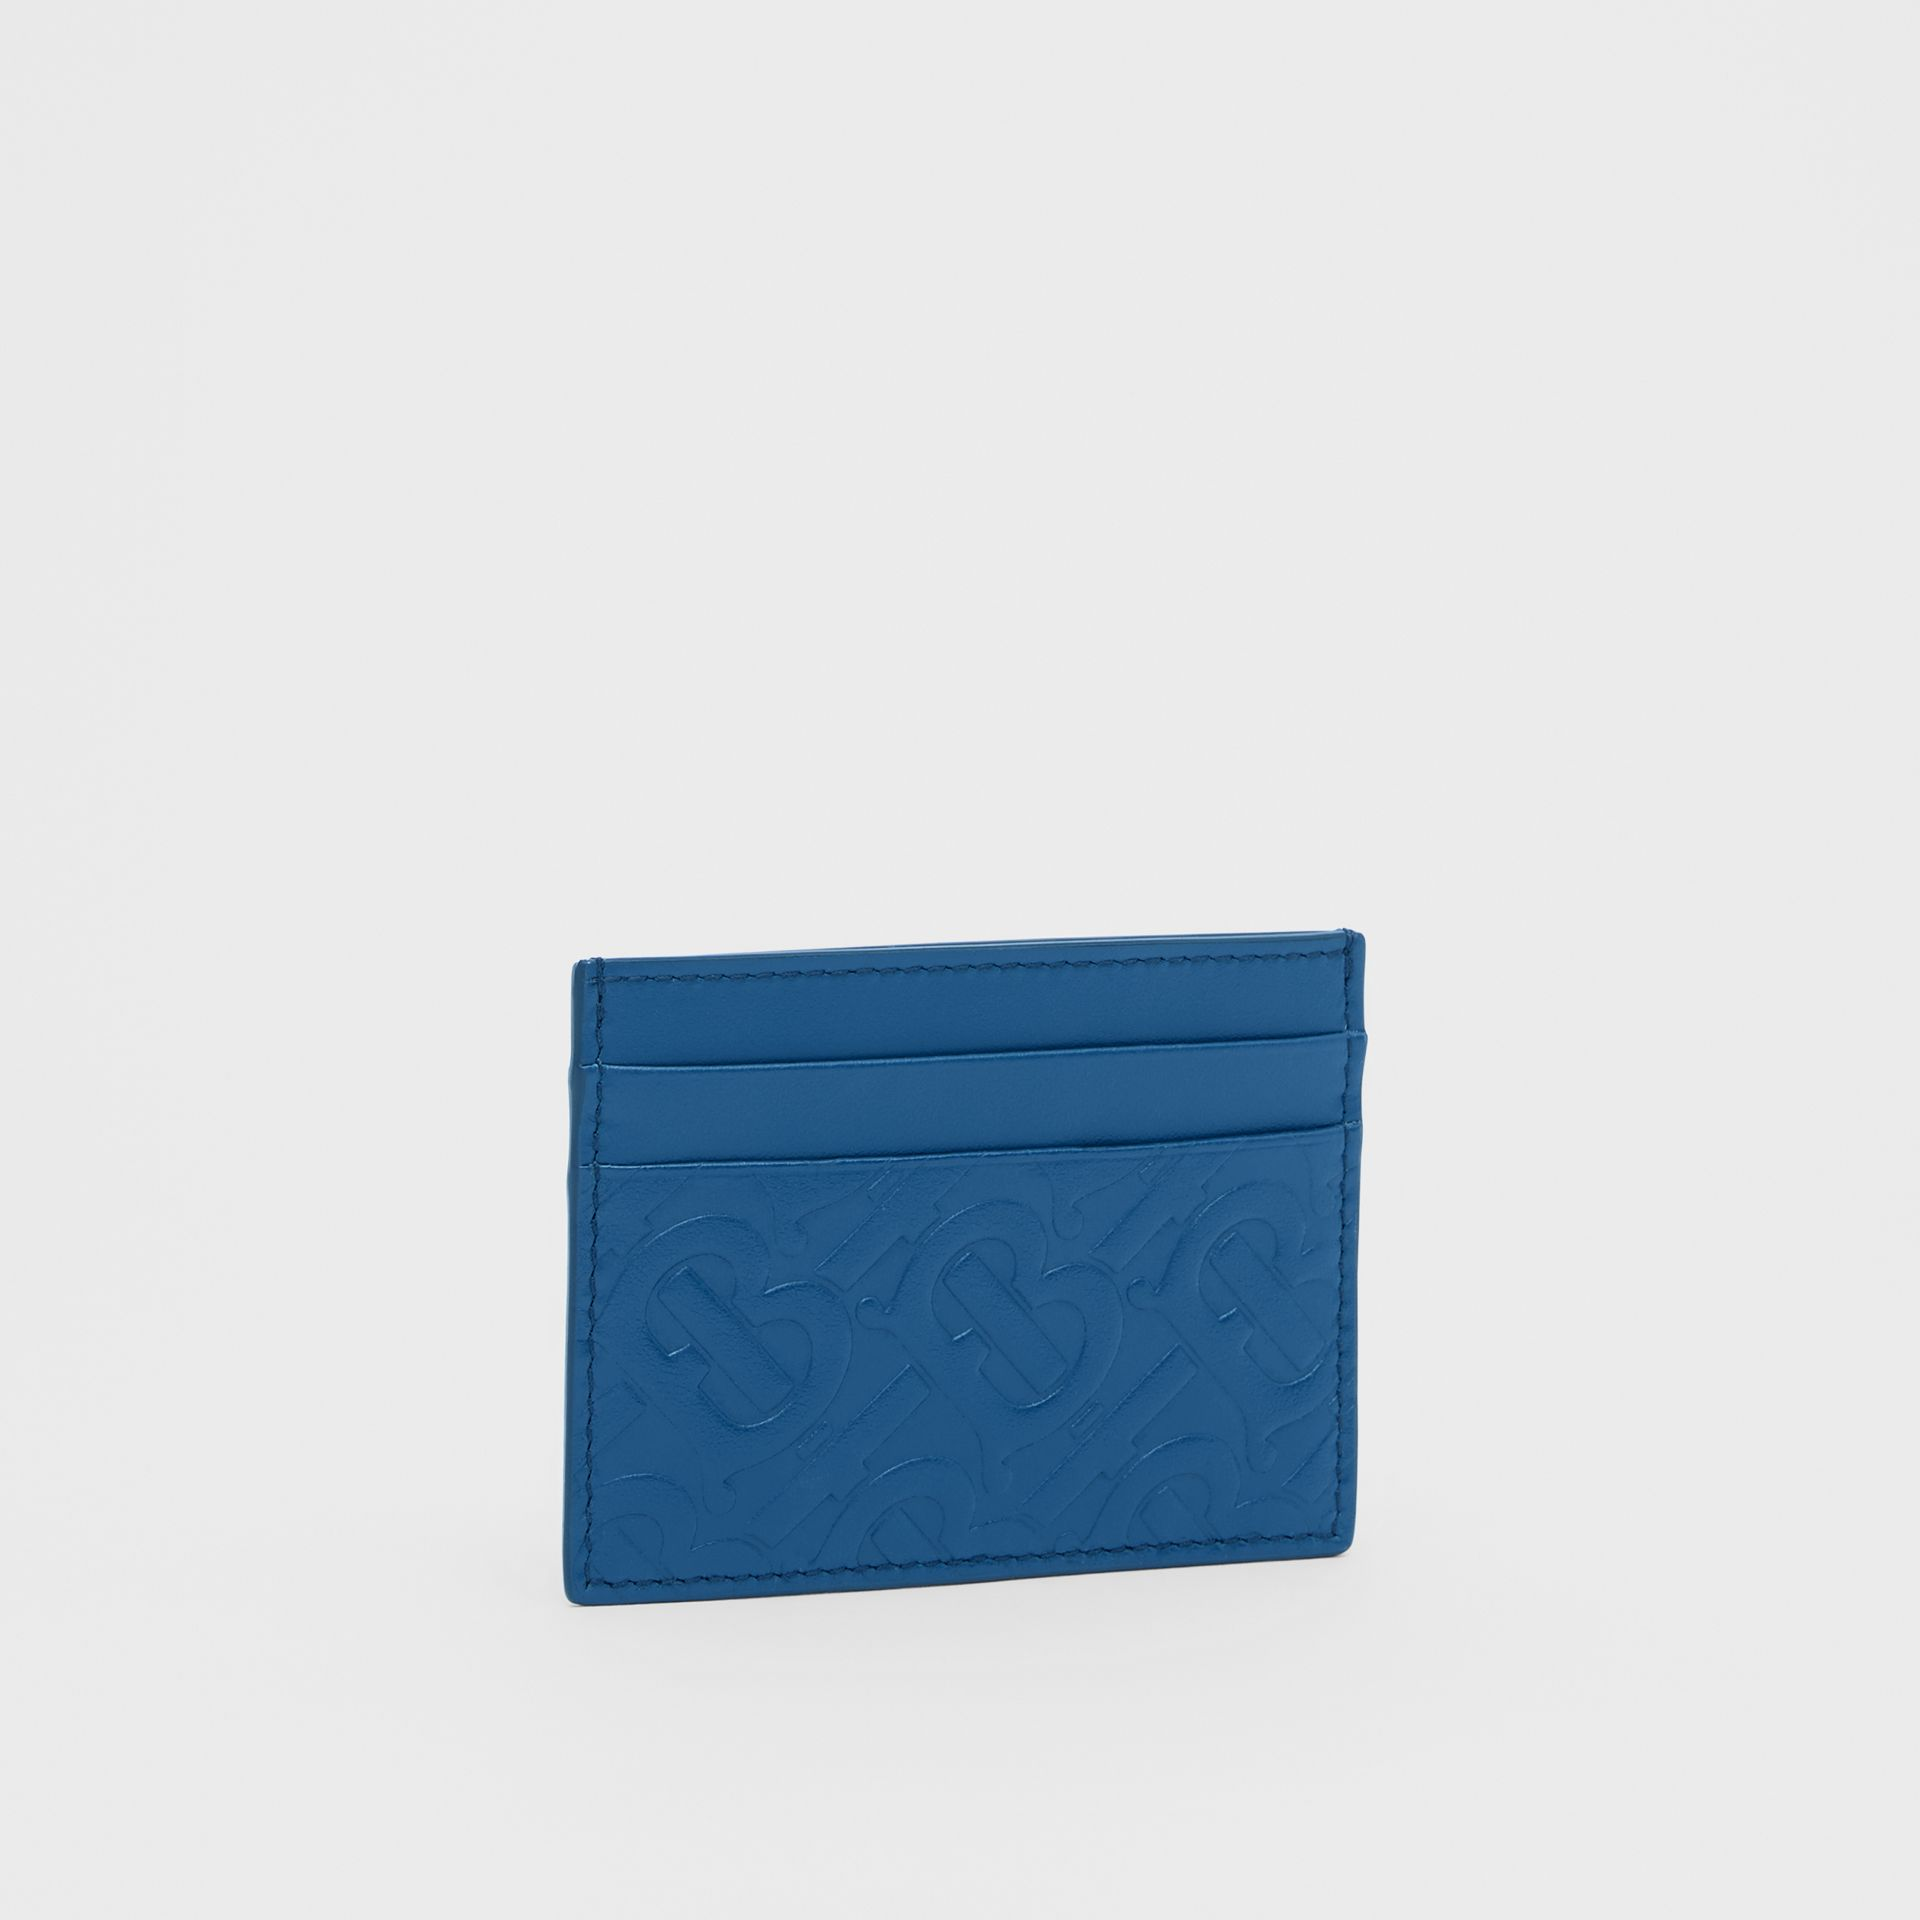 Monogram Leather Card Case in Pale Canvas Blue - Men | Burberry Hong Kong S.A.R - gallery image 3